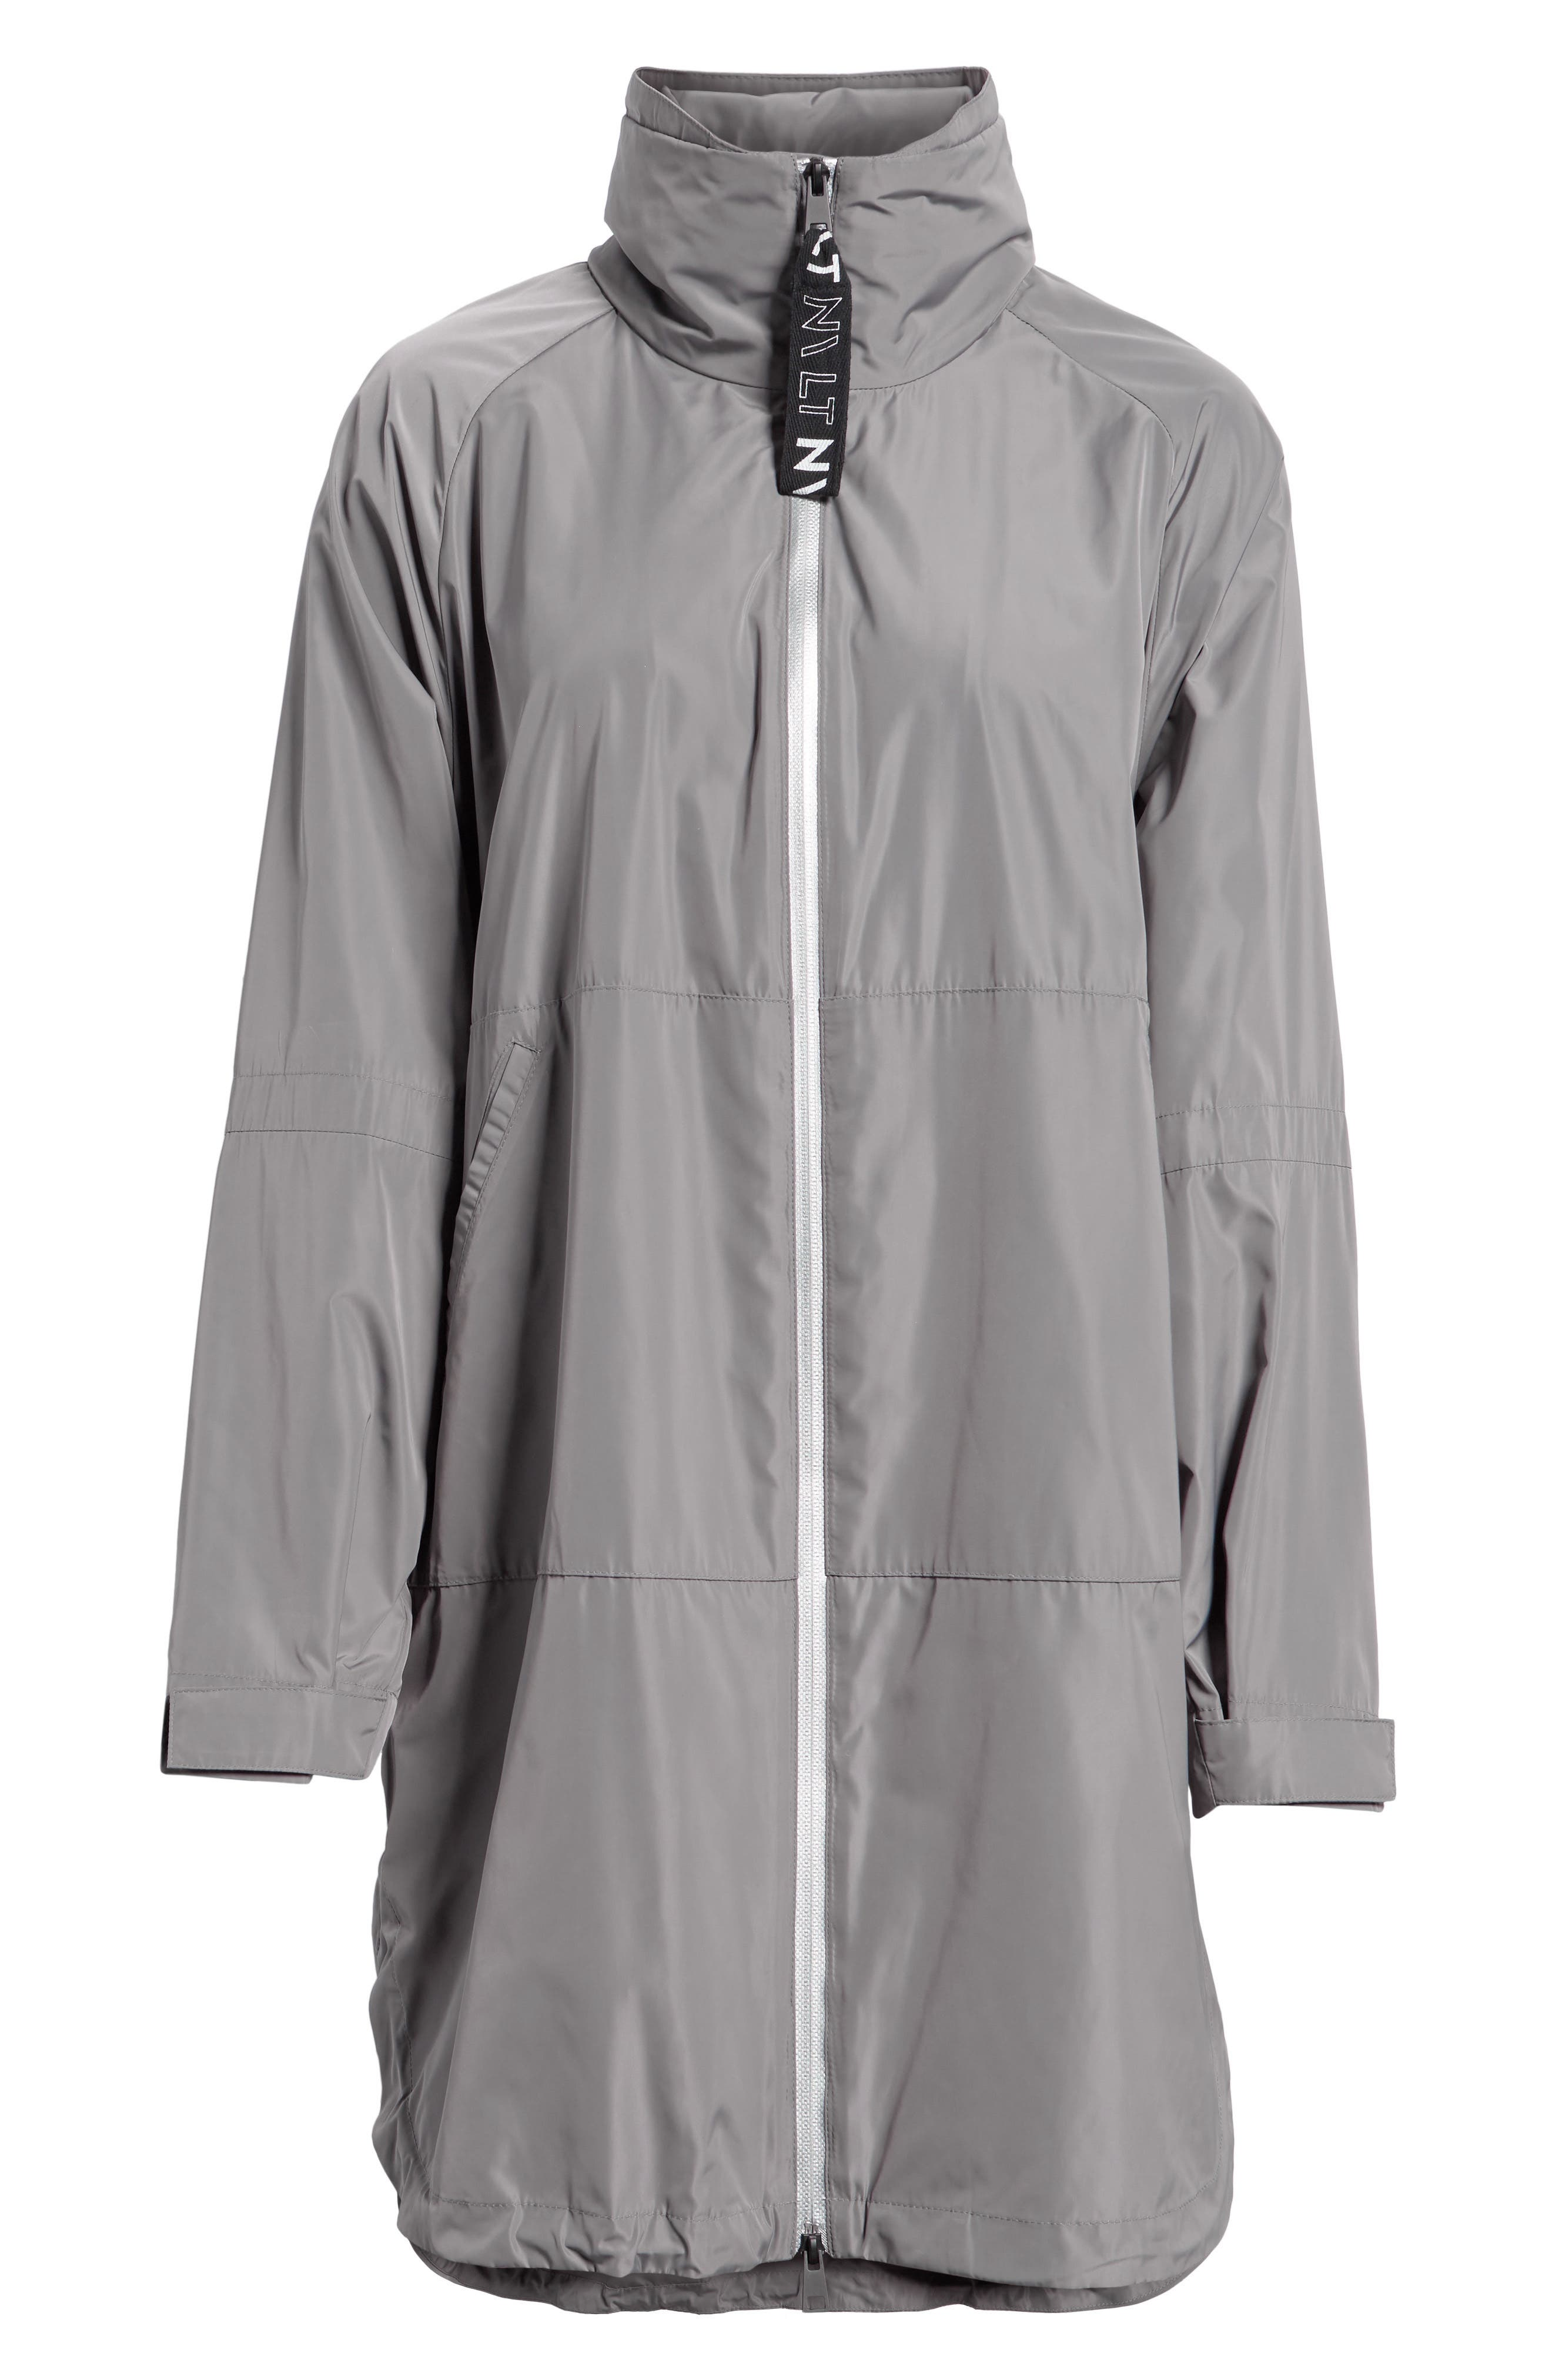 Poly-Luxe Packable Oversize Jacket,                             Alternate thumbnail 5, color,                             020